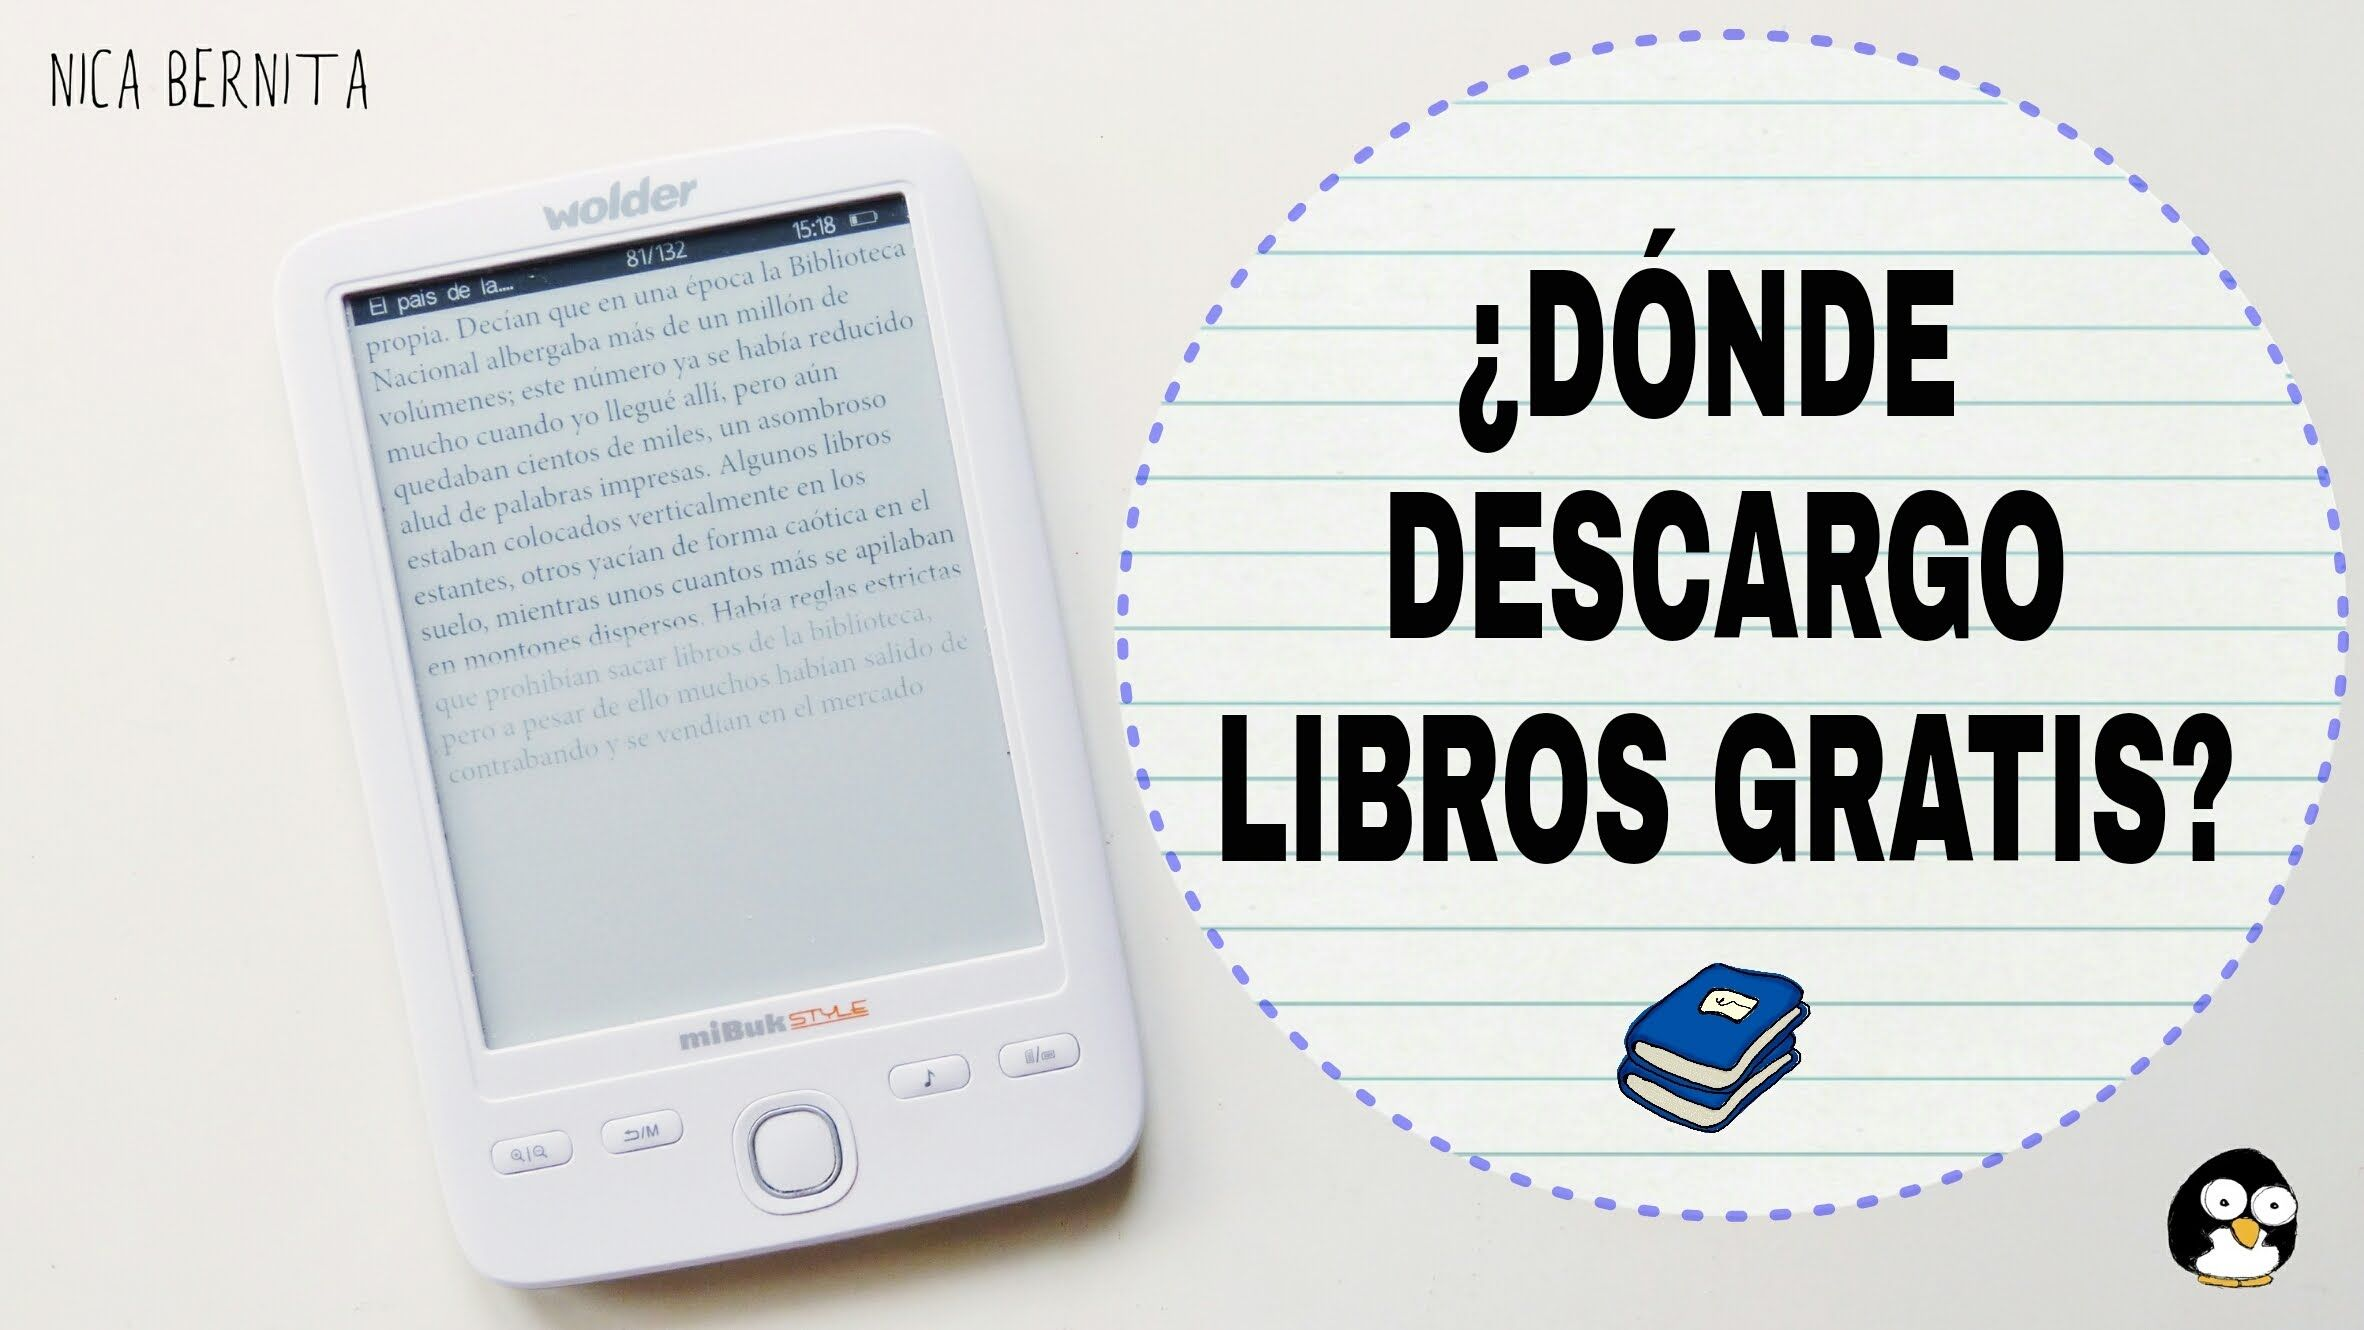 Libros Digitales Para Leer Descargar Libros Gratis Y De Forma Legal Apps Y Webs De